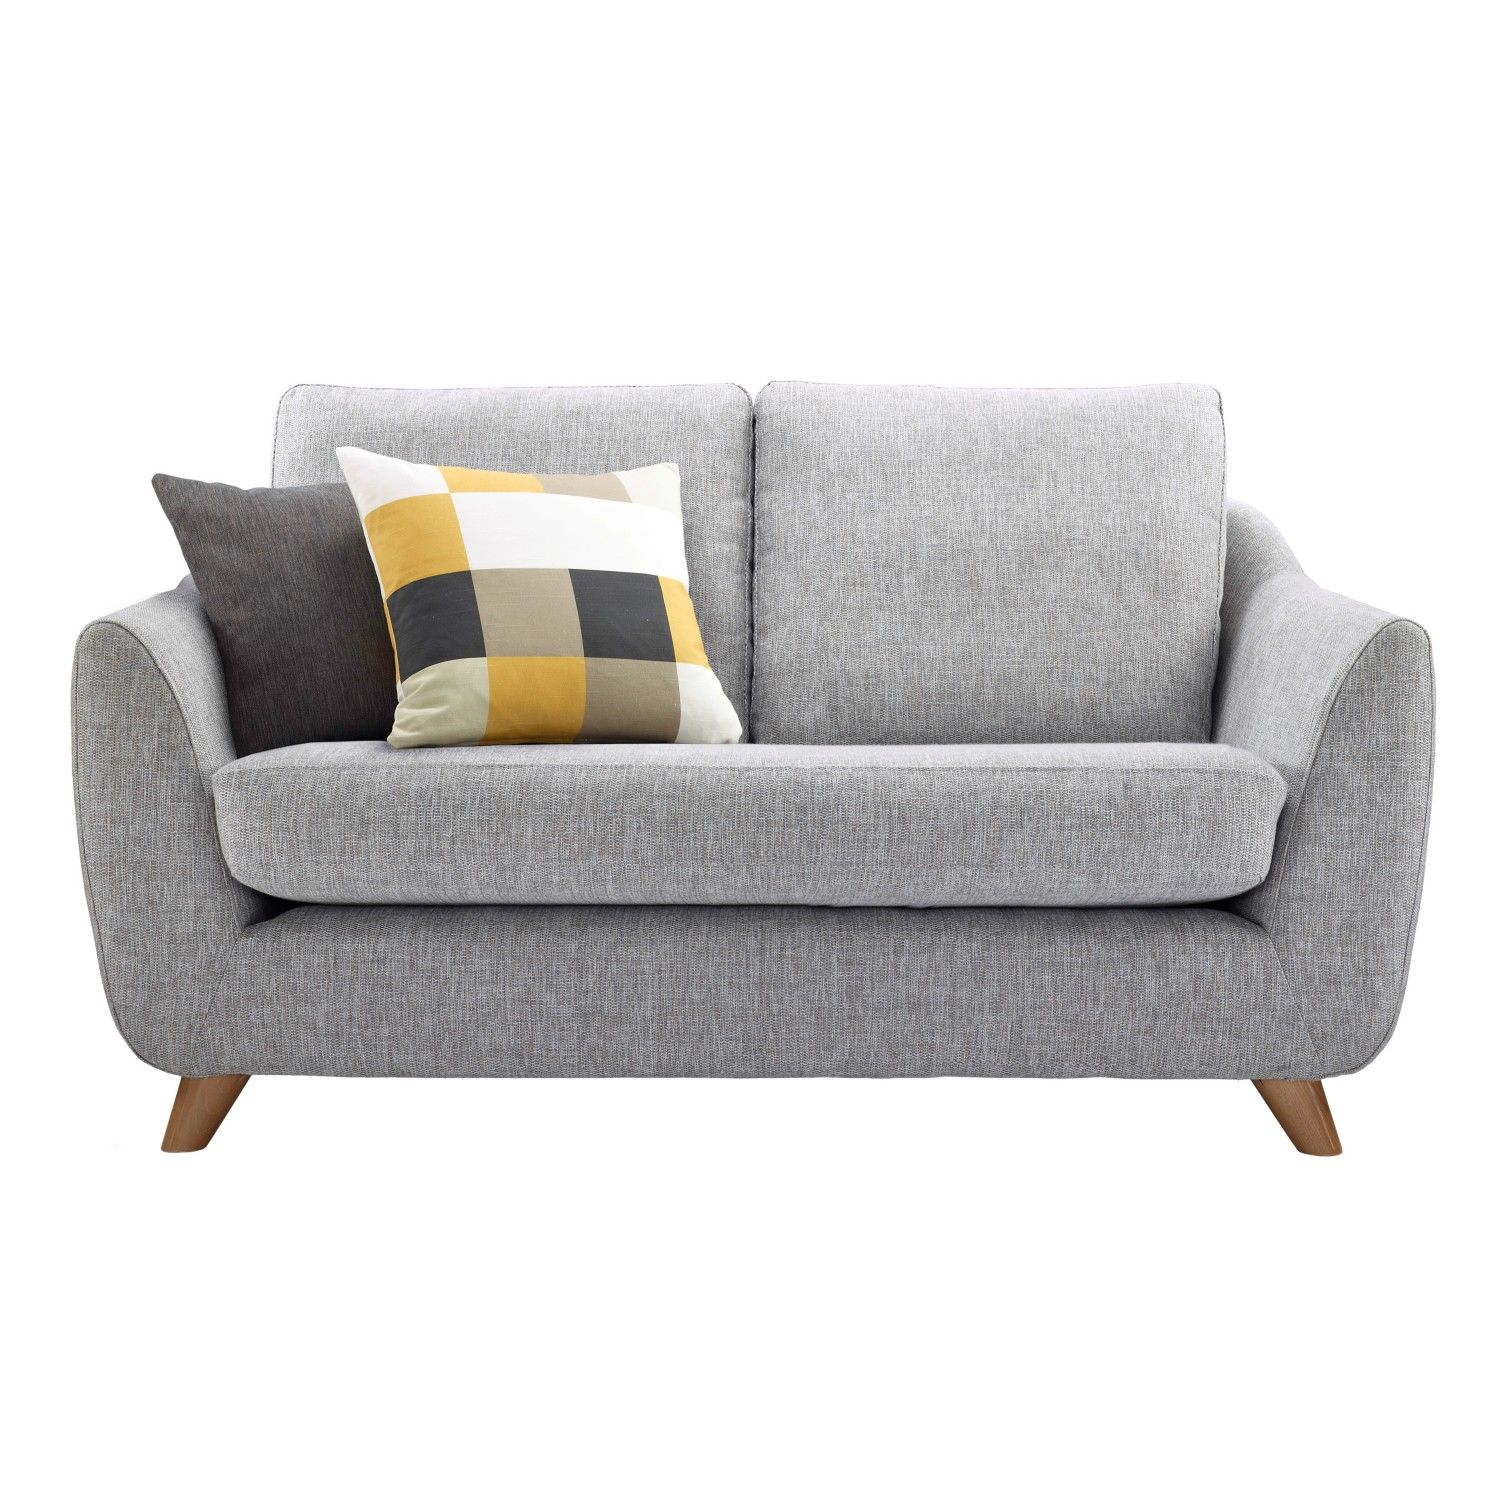 Design Small Sofa Bed loveseats for small spaces cheap sofa decoration buy g plan vintage the sixty seven marl grey from our sofas beds range at john lewis